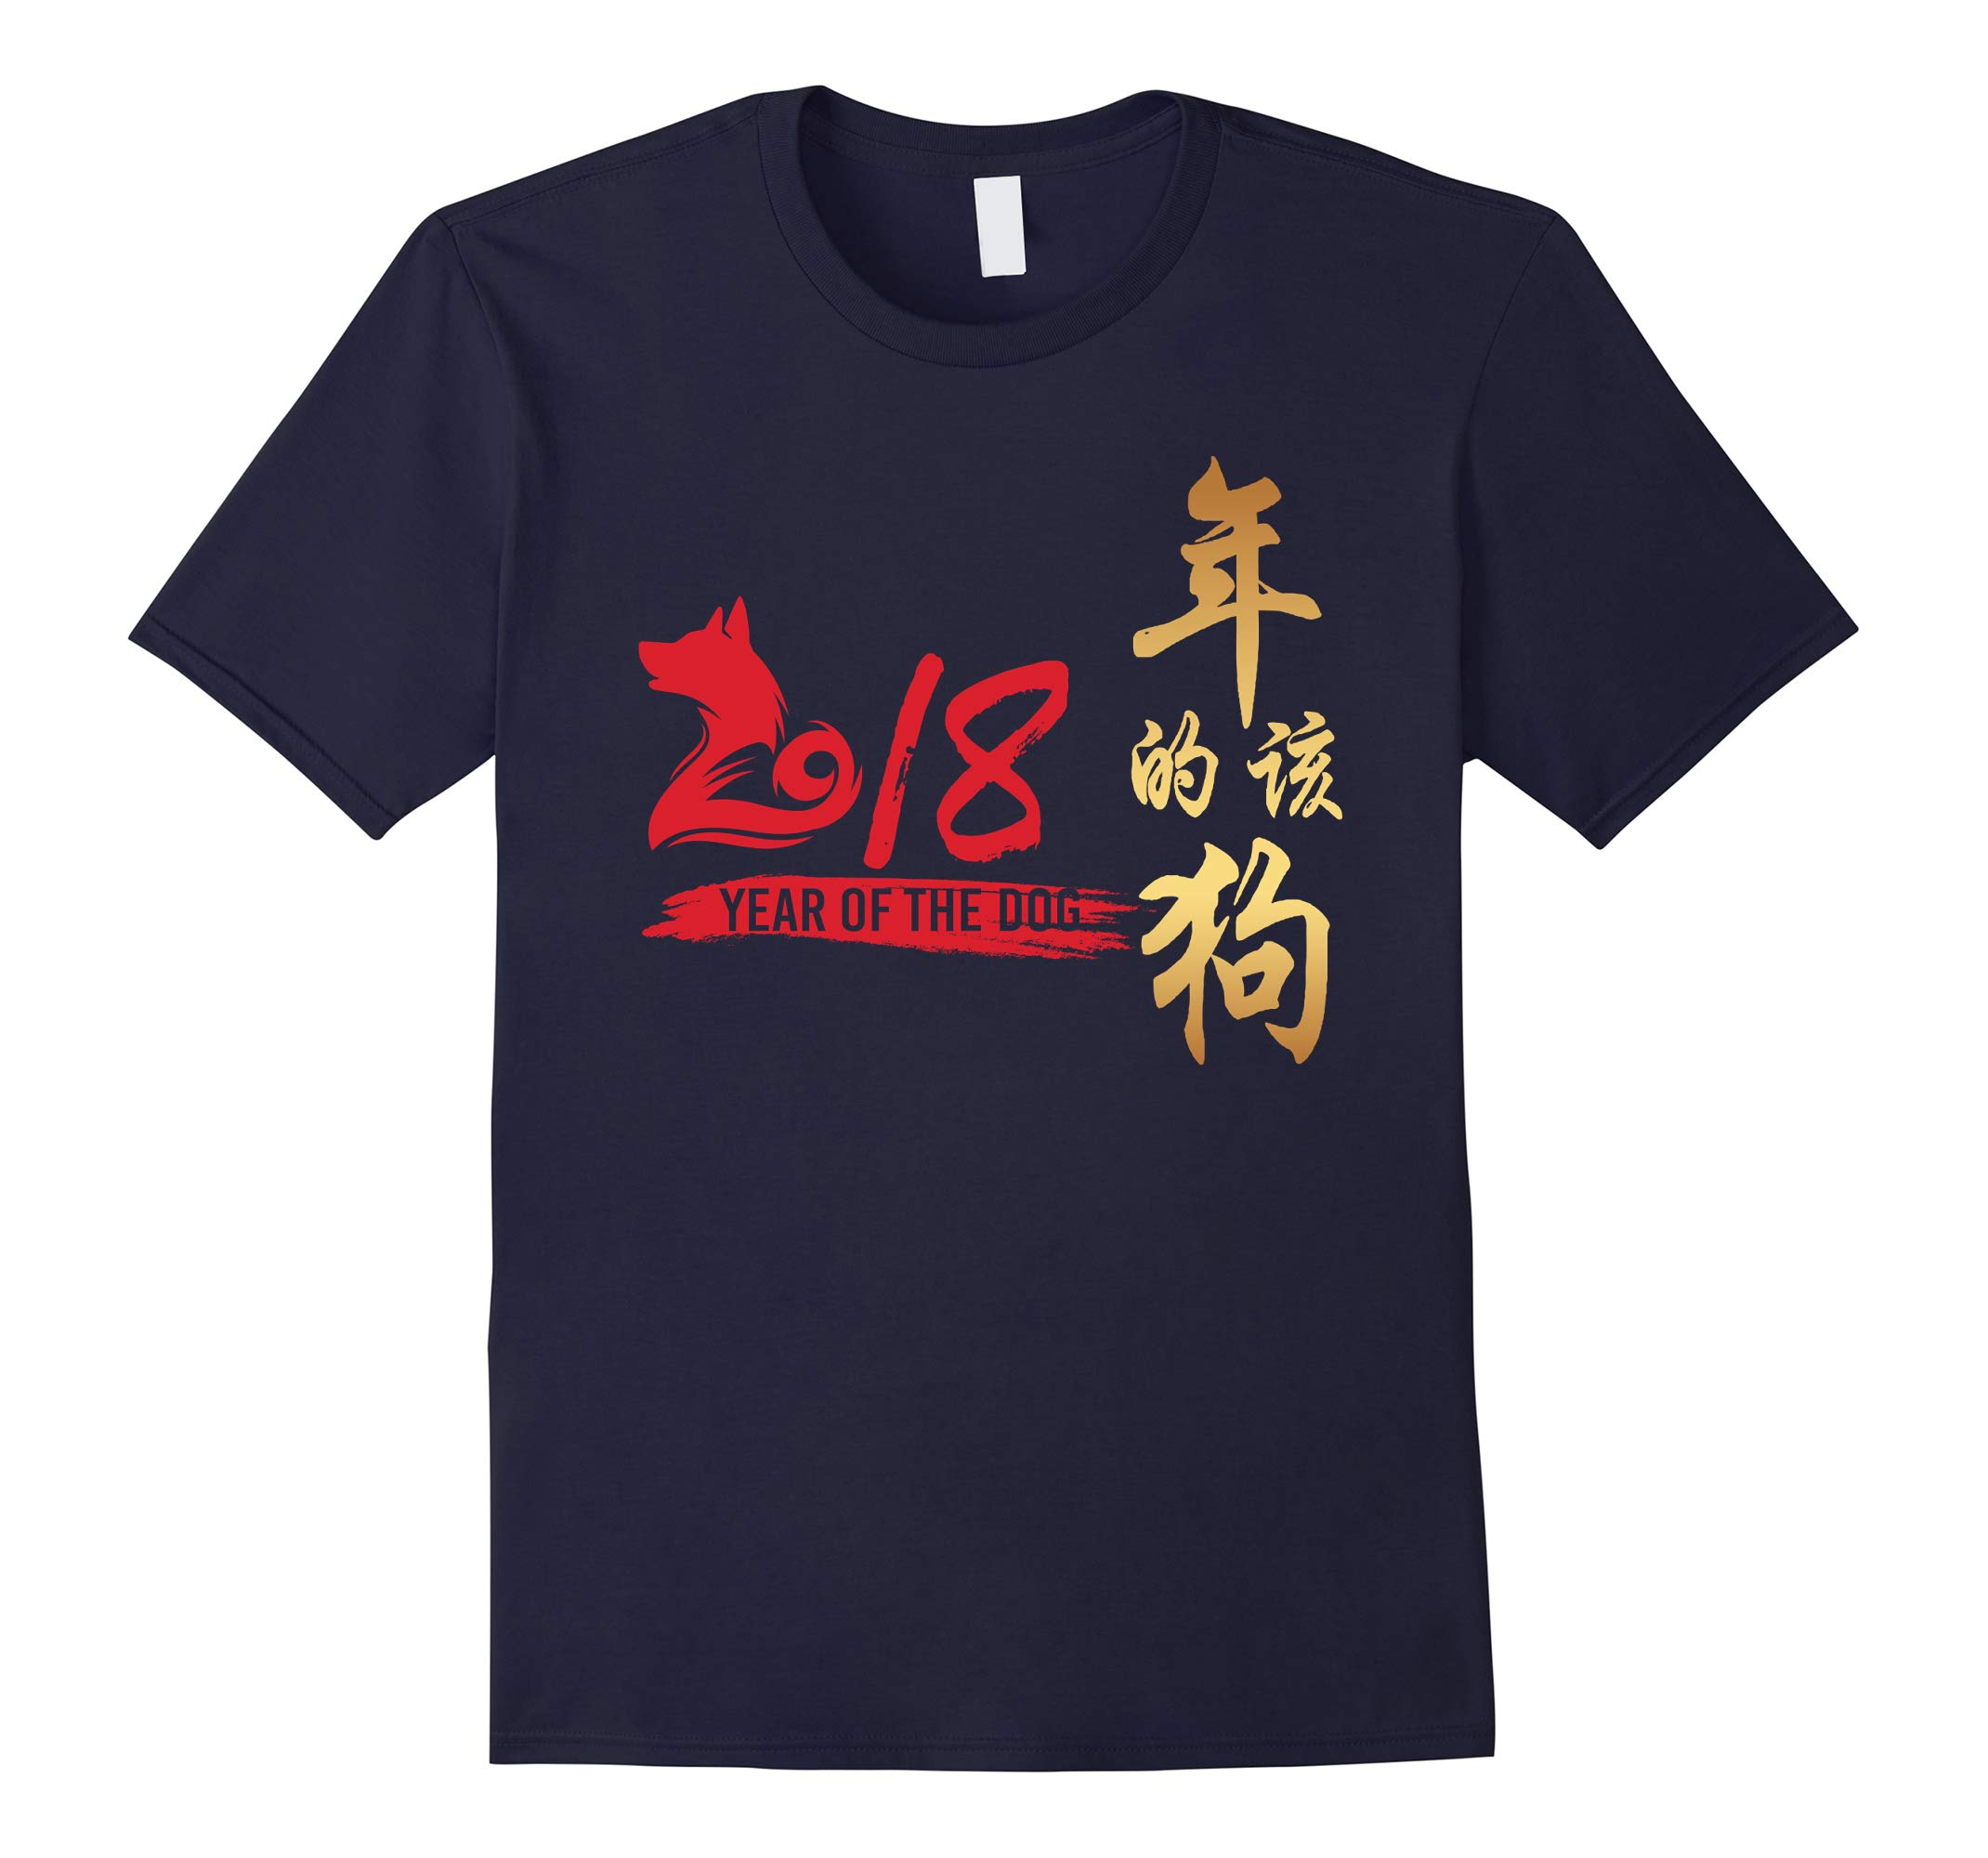 'Year of Dog 2018' Great Chinese New Year Dog Shirt-RT